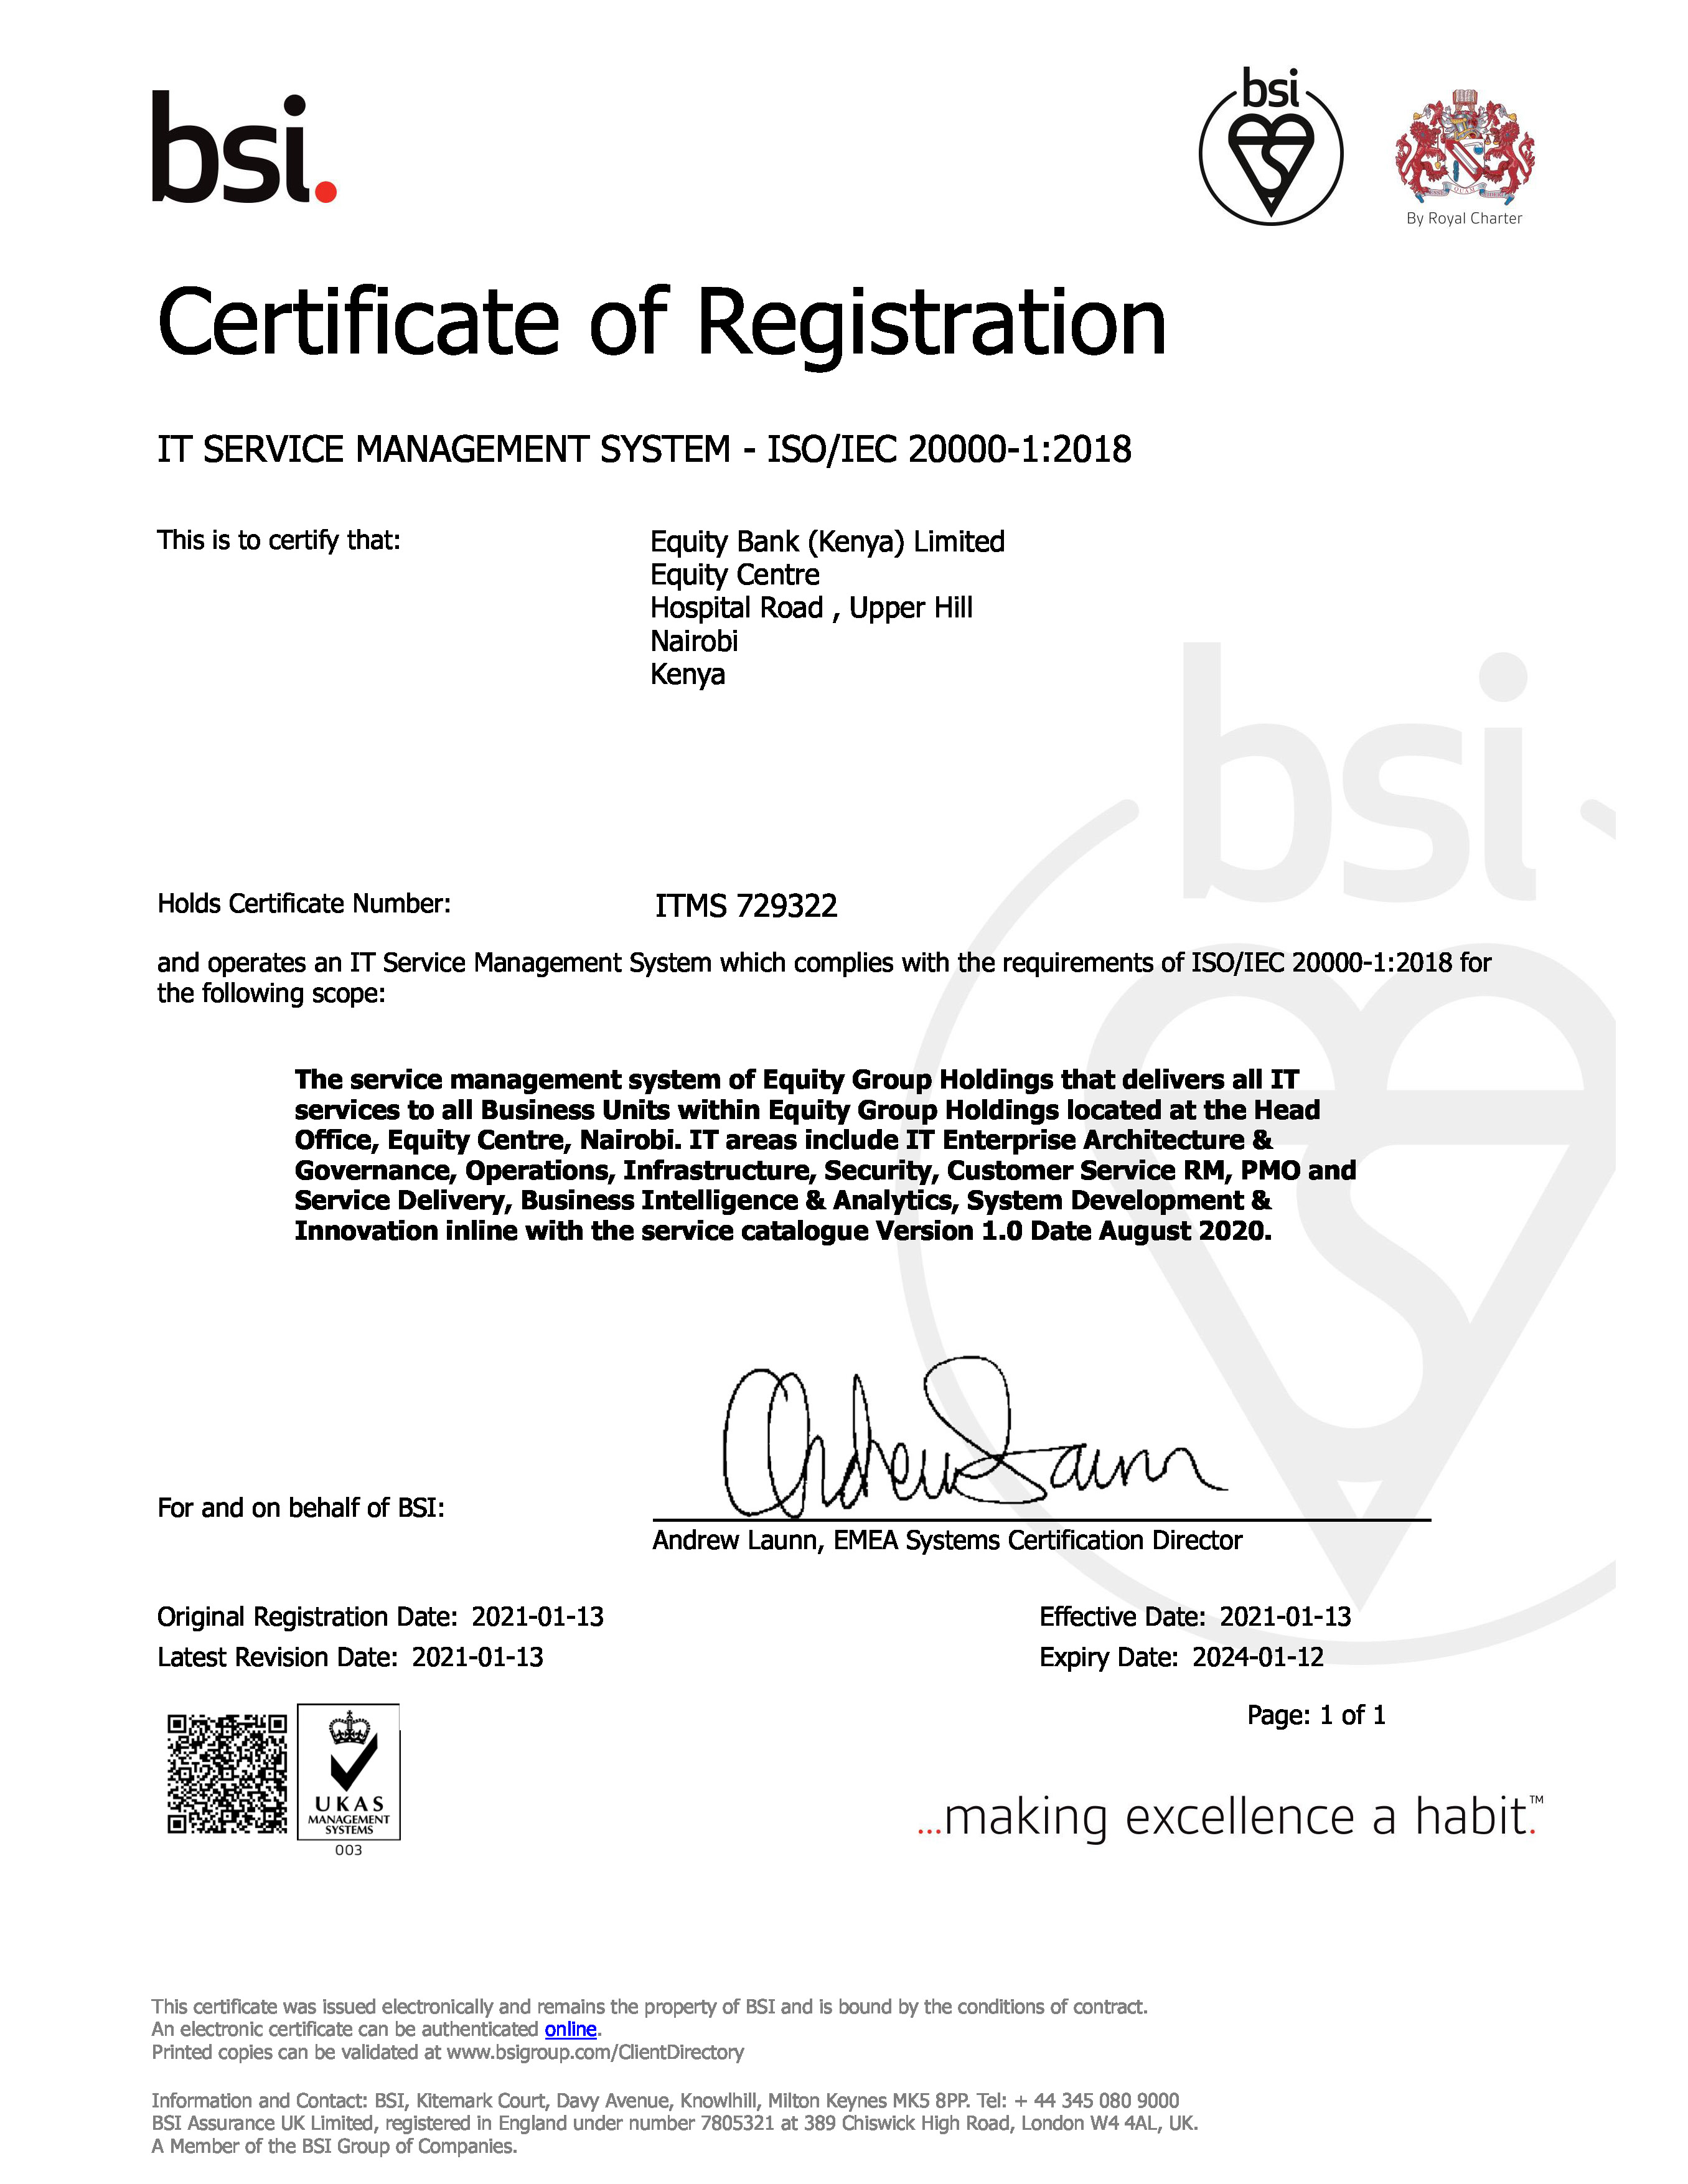 Certification ITMS 729322